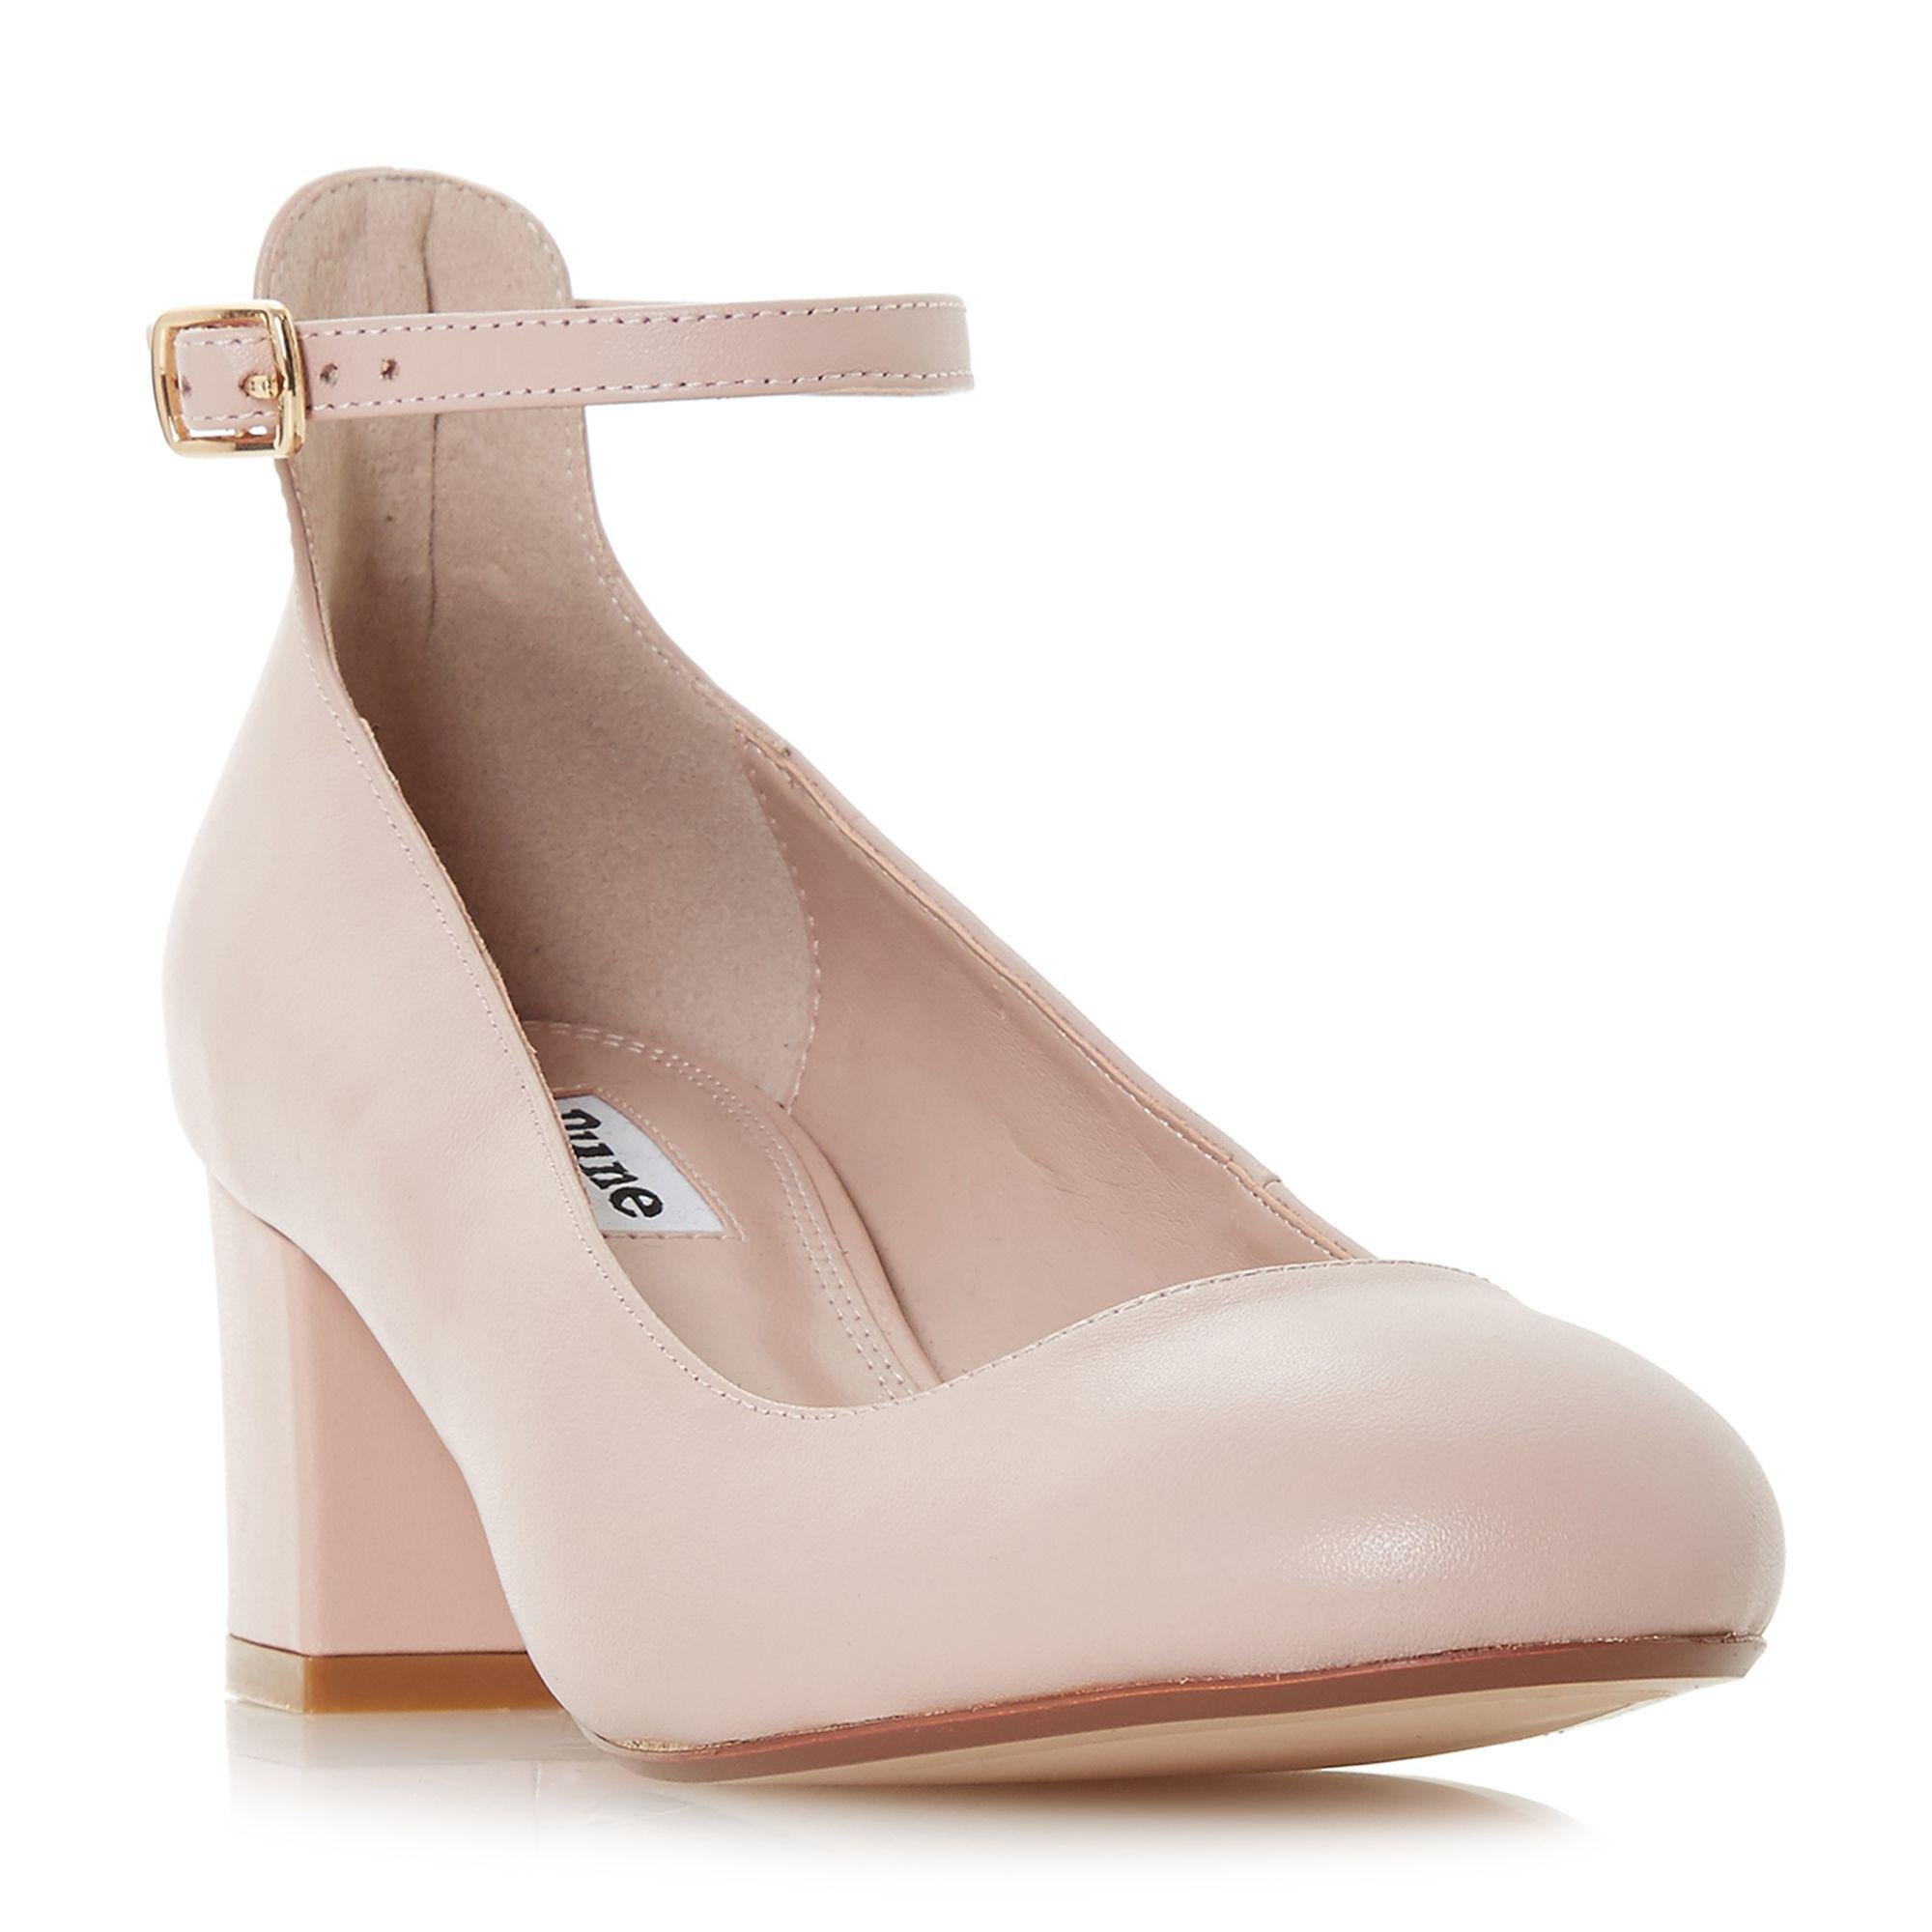 92b1120c31 Dune Light Pink Leather 'allie' Mid Block Heel Court Shoes in Pink ...